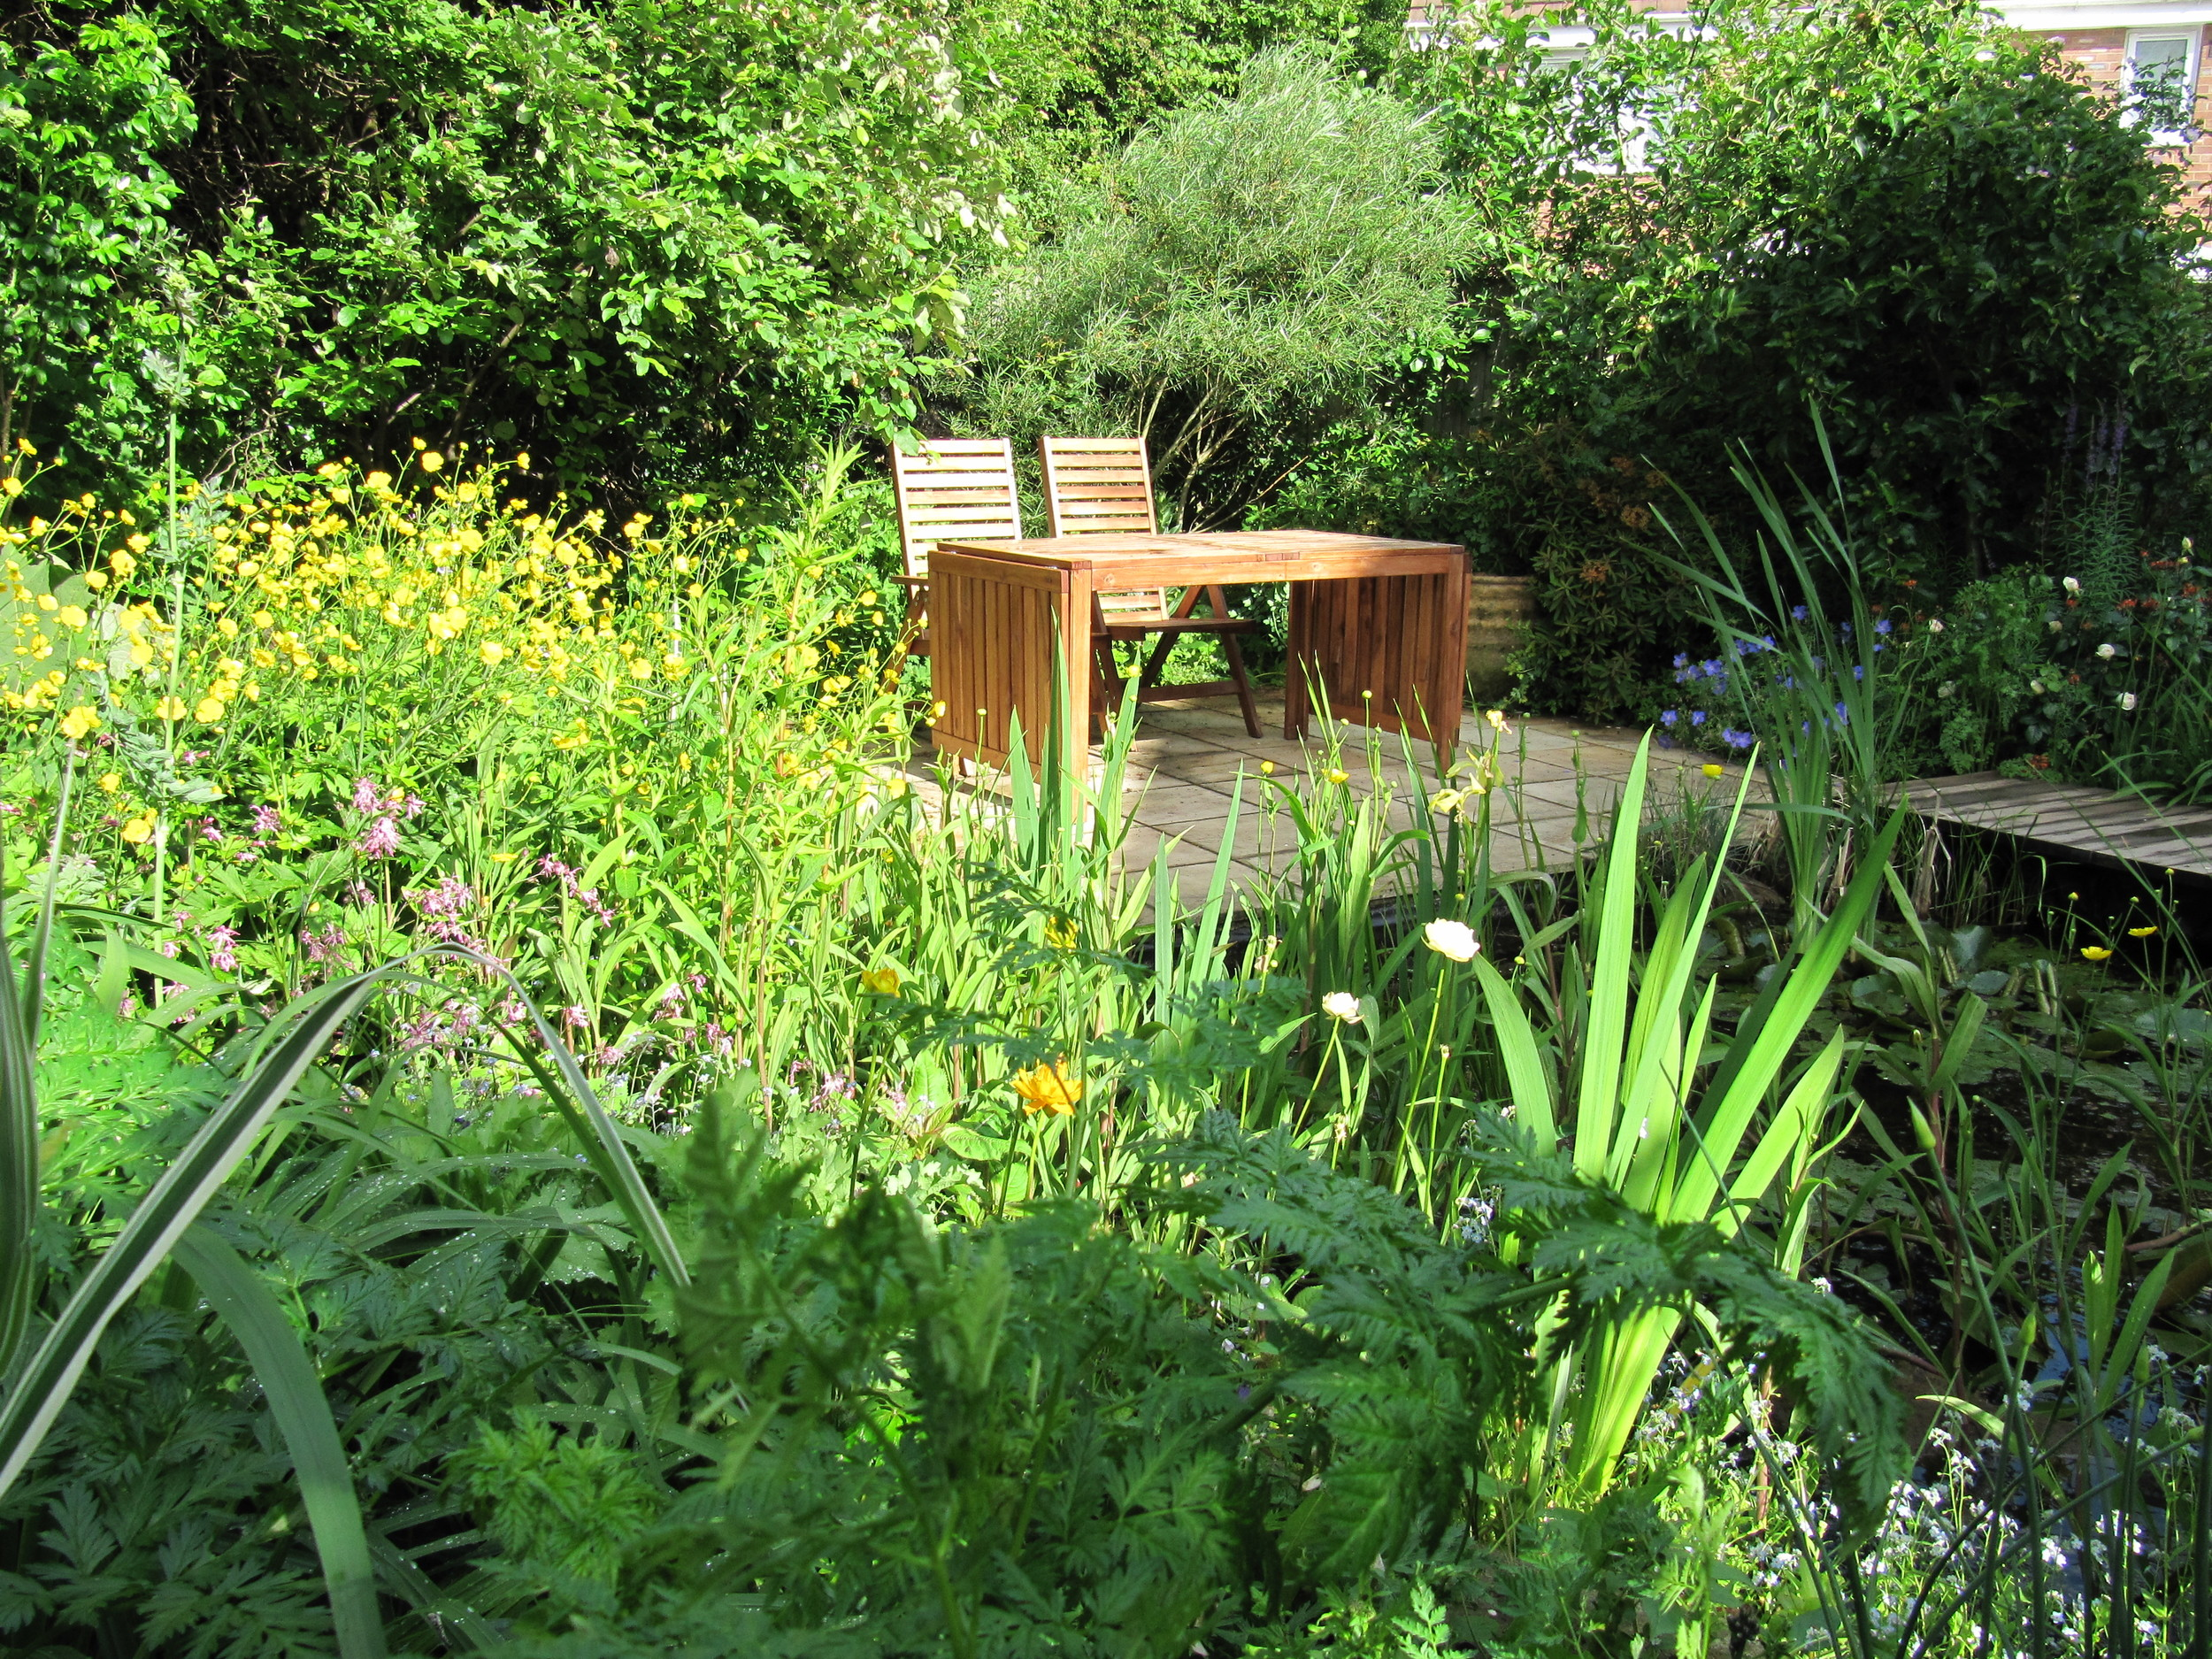 Informal gardens don't have to be large, small gardens too can benefit from a more natural approach.